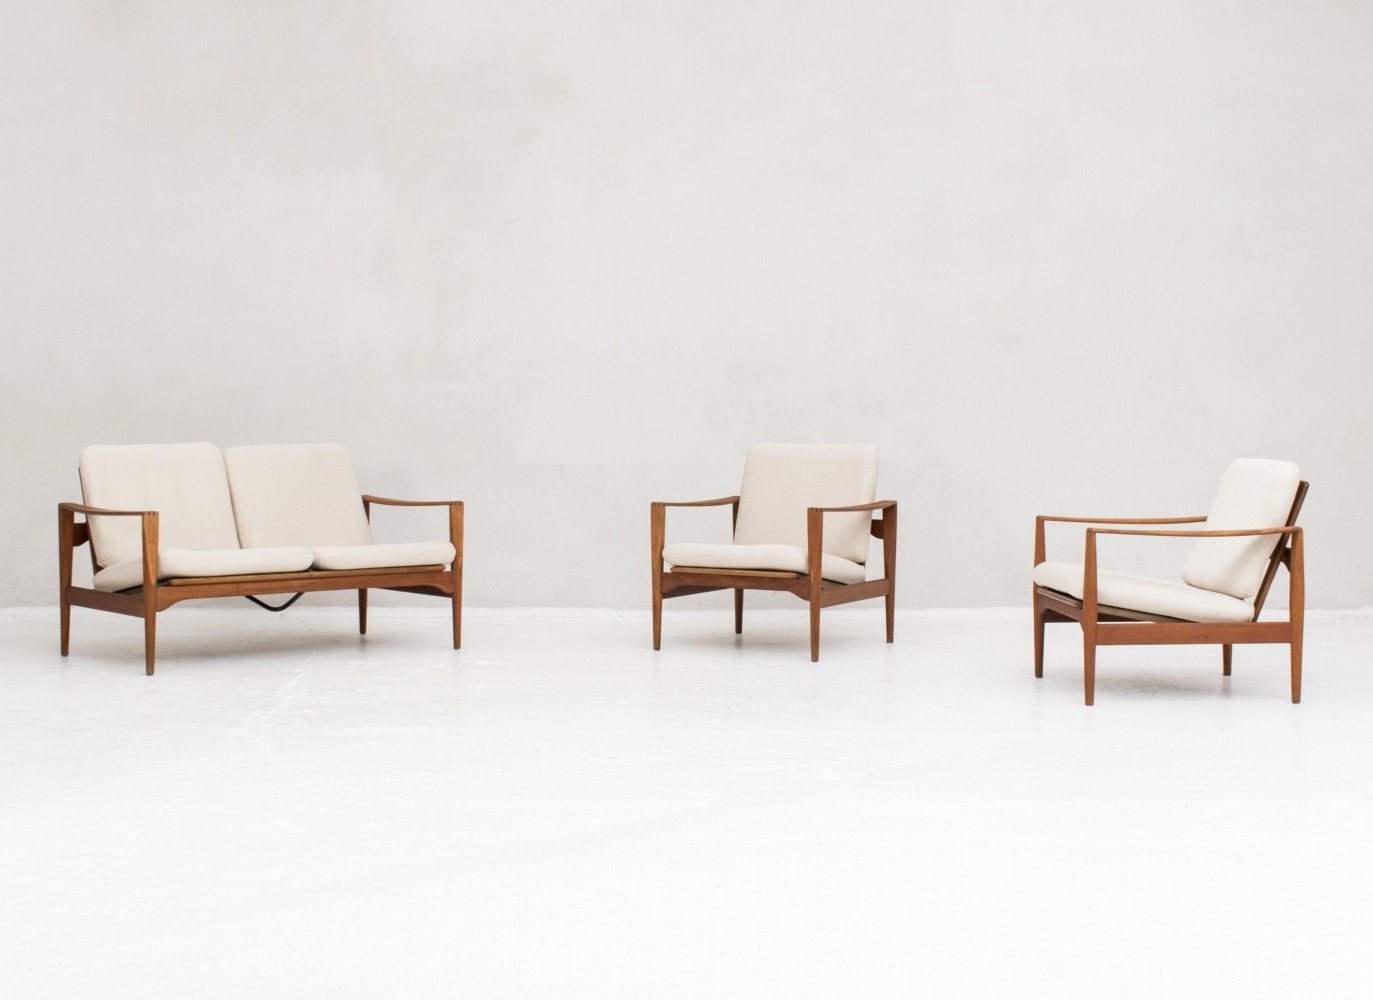 Seating group by Illum Wikkelso, Denmark 1960s